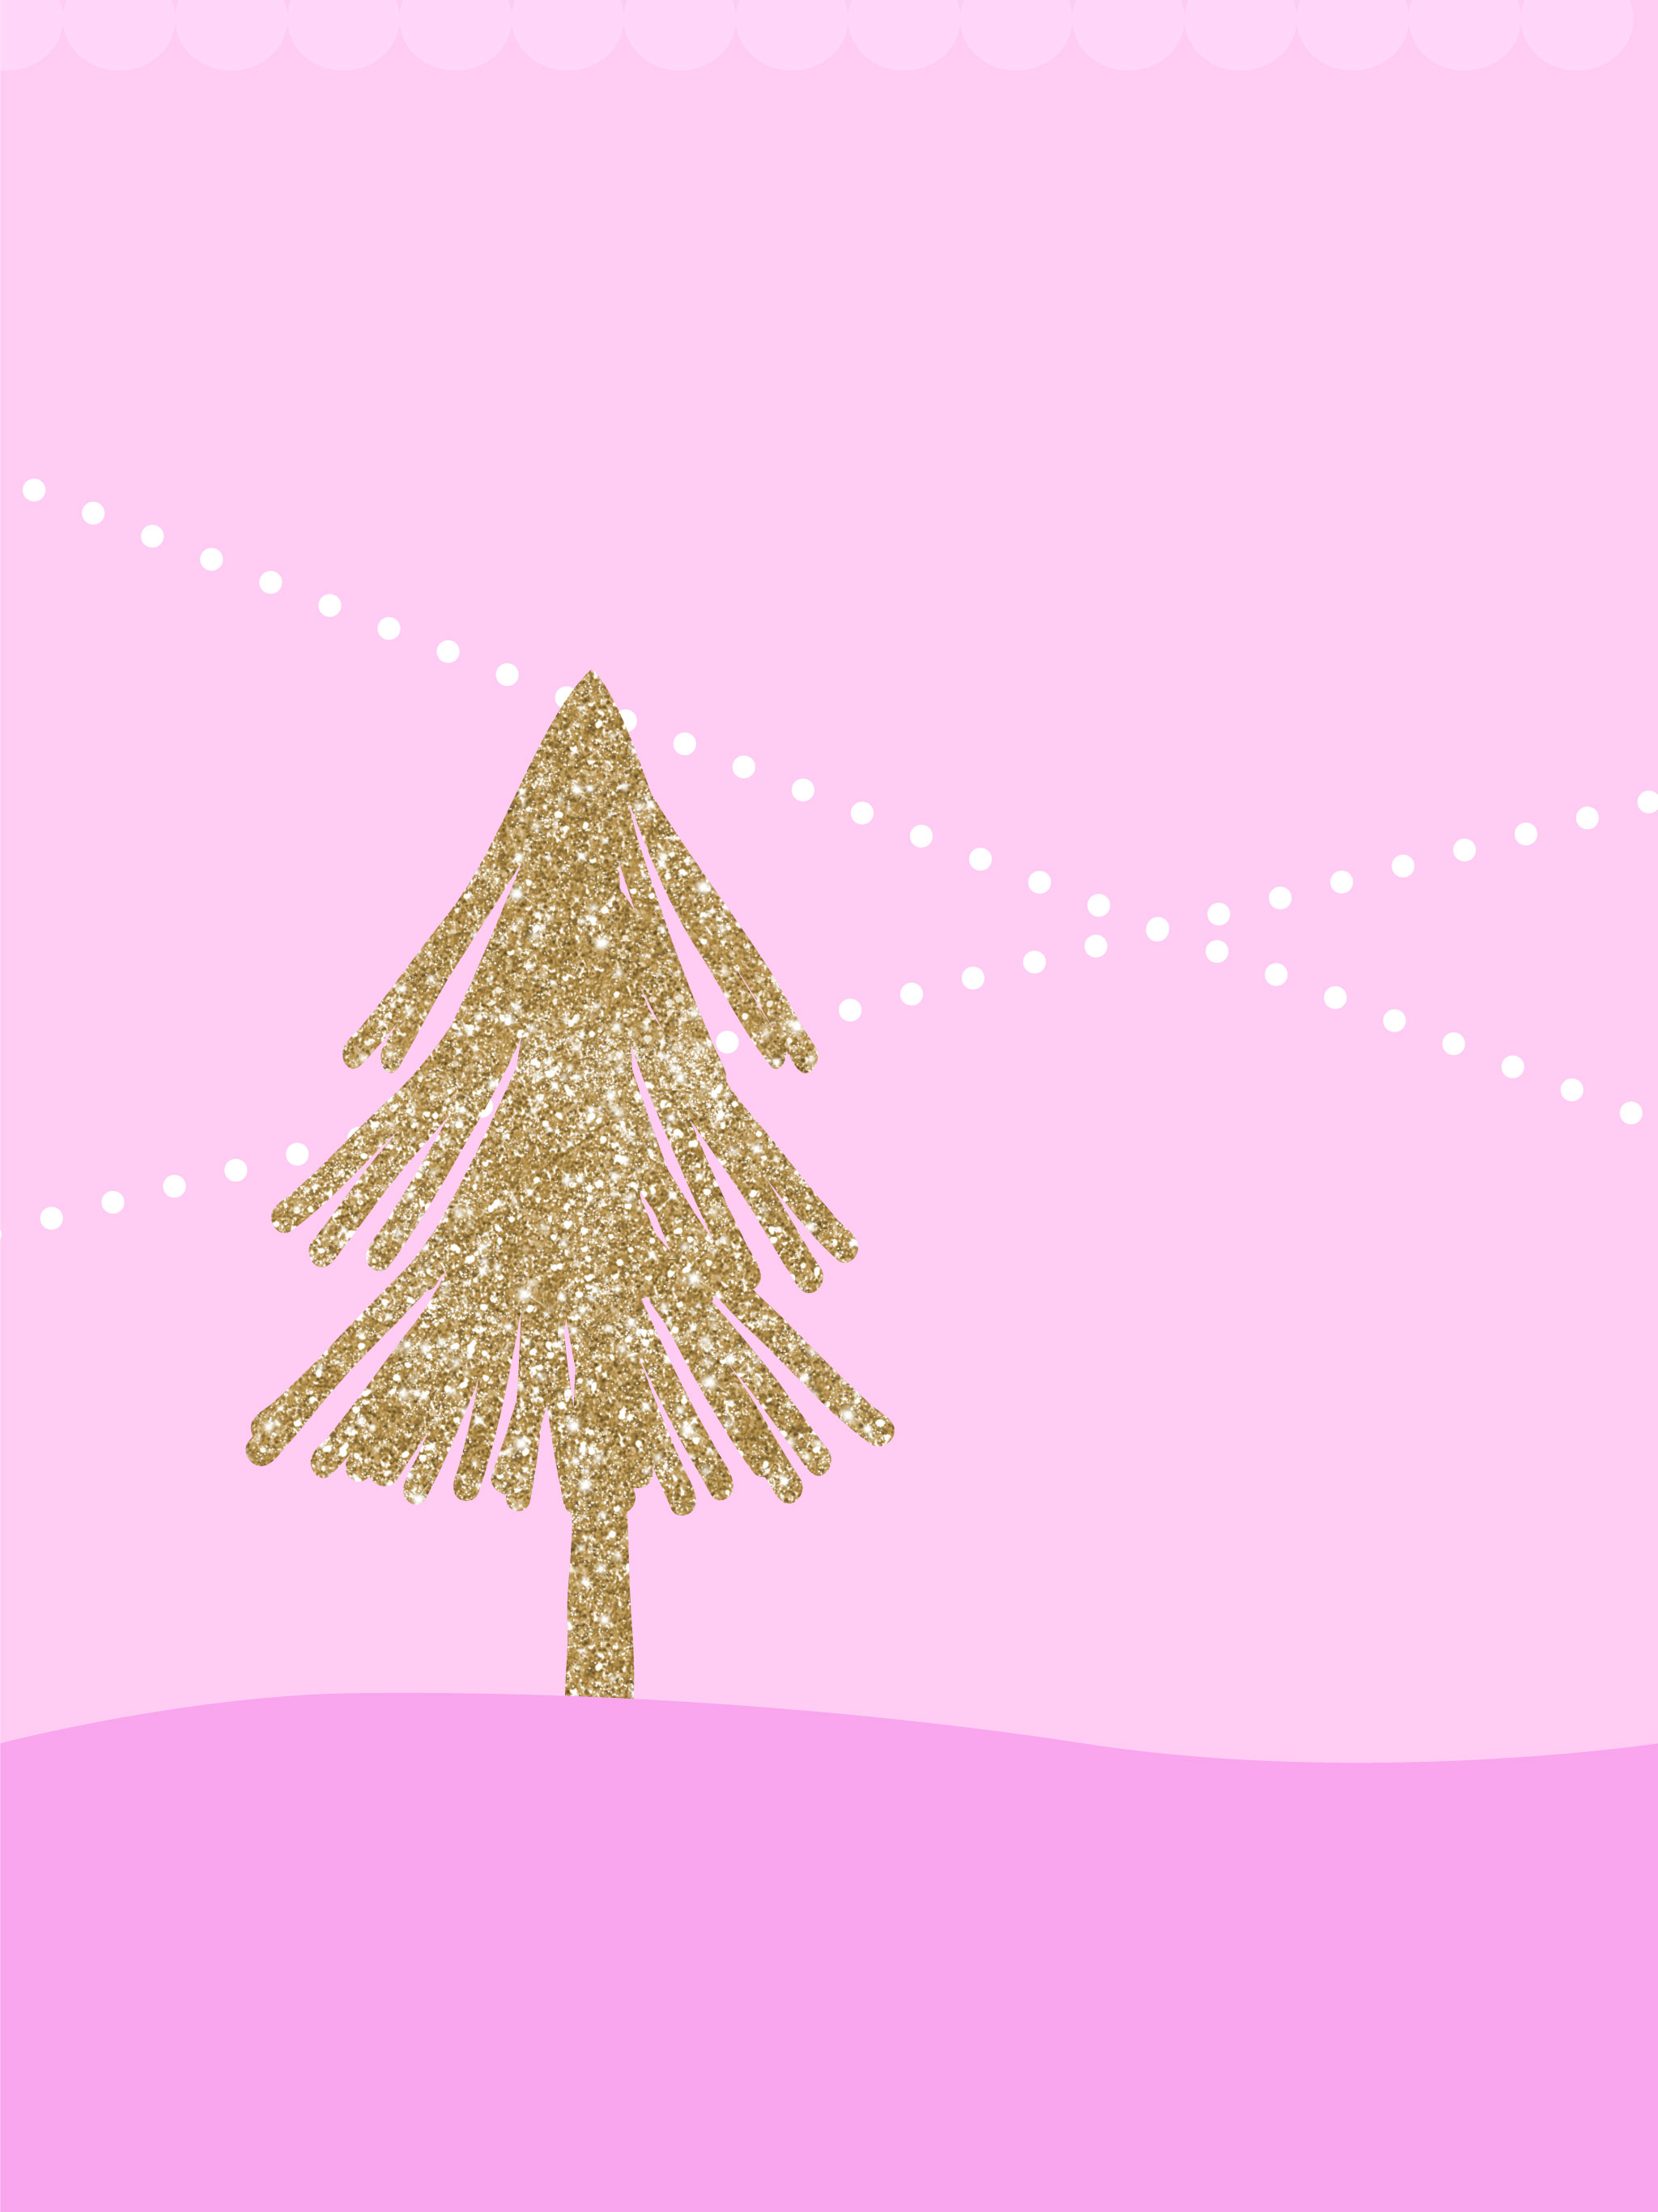 Digital Christmas Wallpaper Glittery Christmas Tree Pink